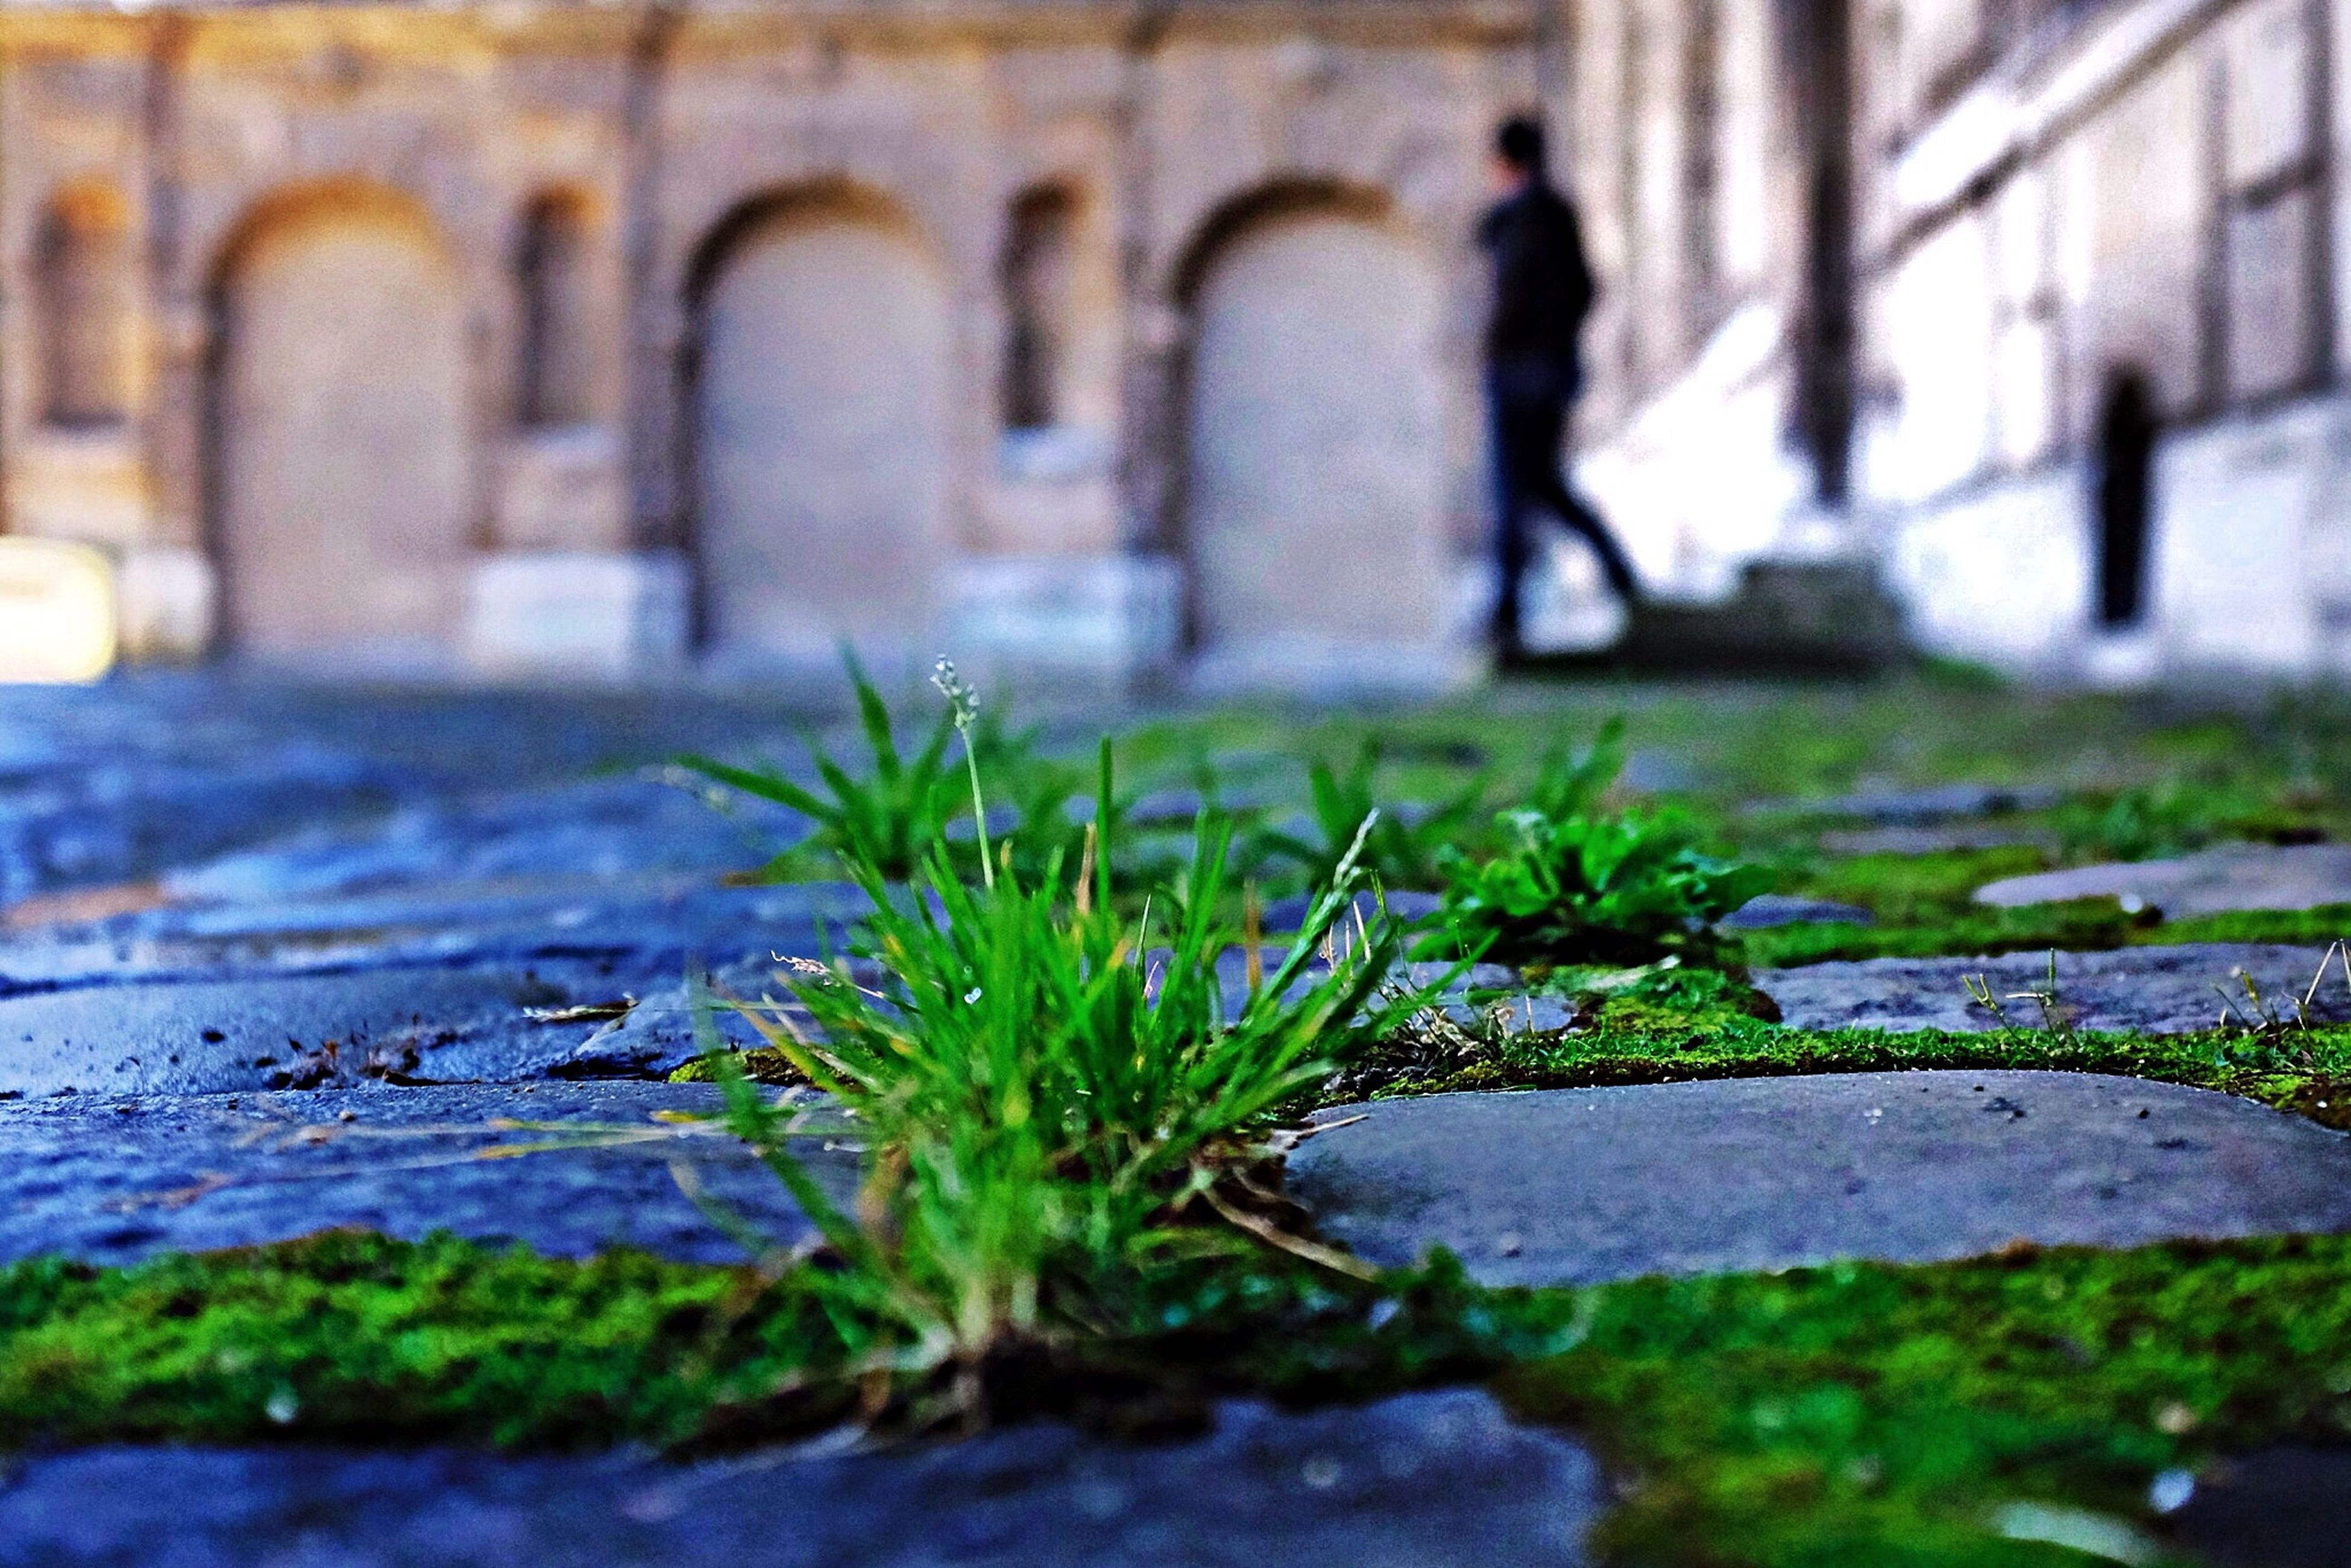 plant, growth, green color, wall - building feature, close-up, outdoors, built structure, sunlight, shadow, focus on foreground, day, selective focus, no people, nature, footpath, wall, leaf, growing, architecture, weathered